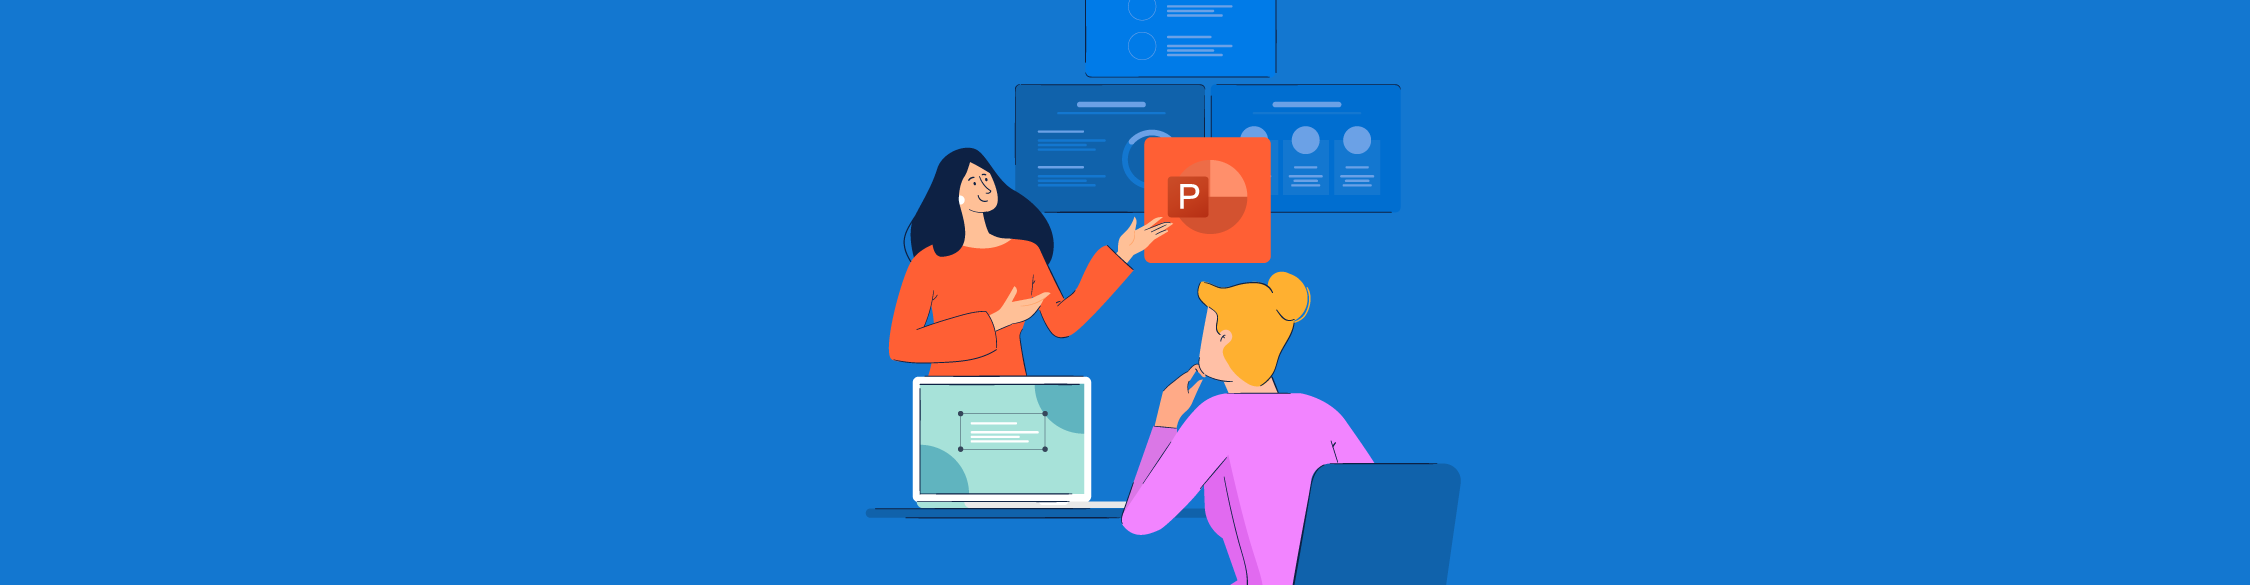 10 Top PowerPoint Presentation Tips for Beginners (2021 List)